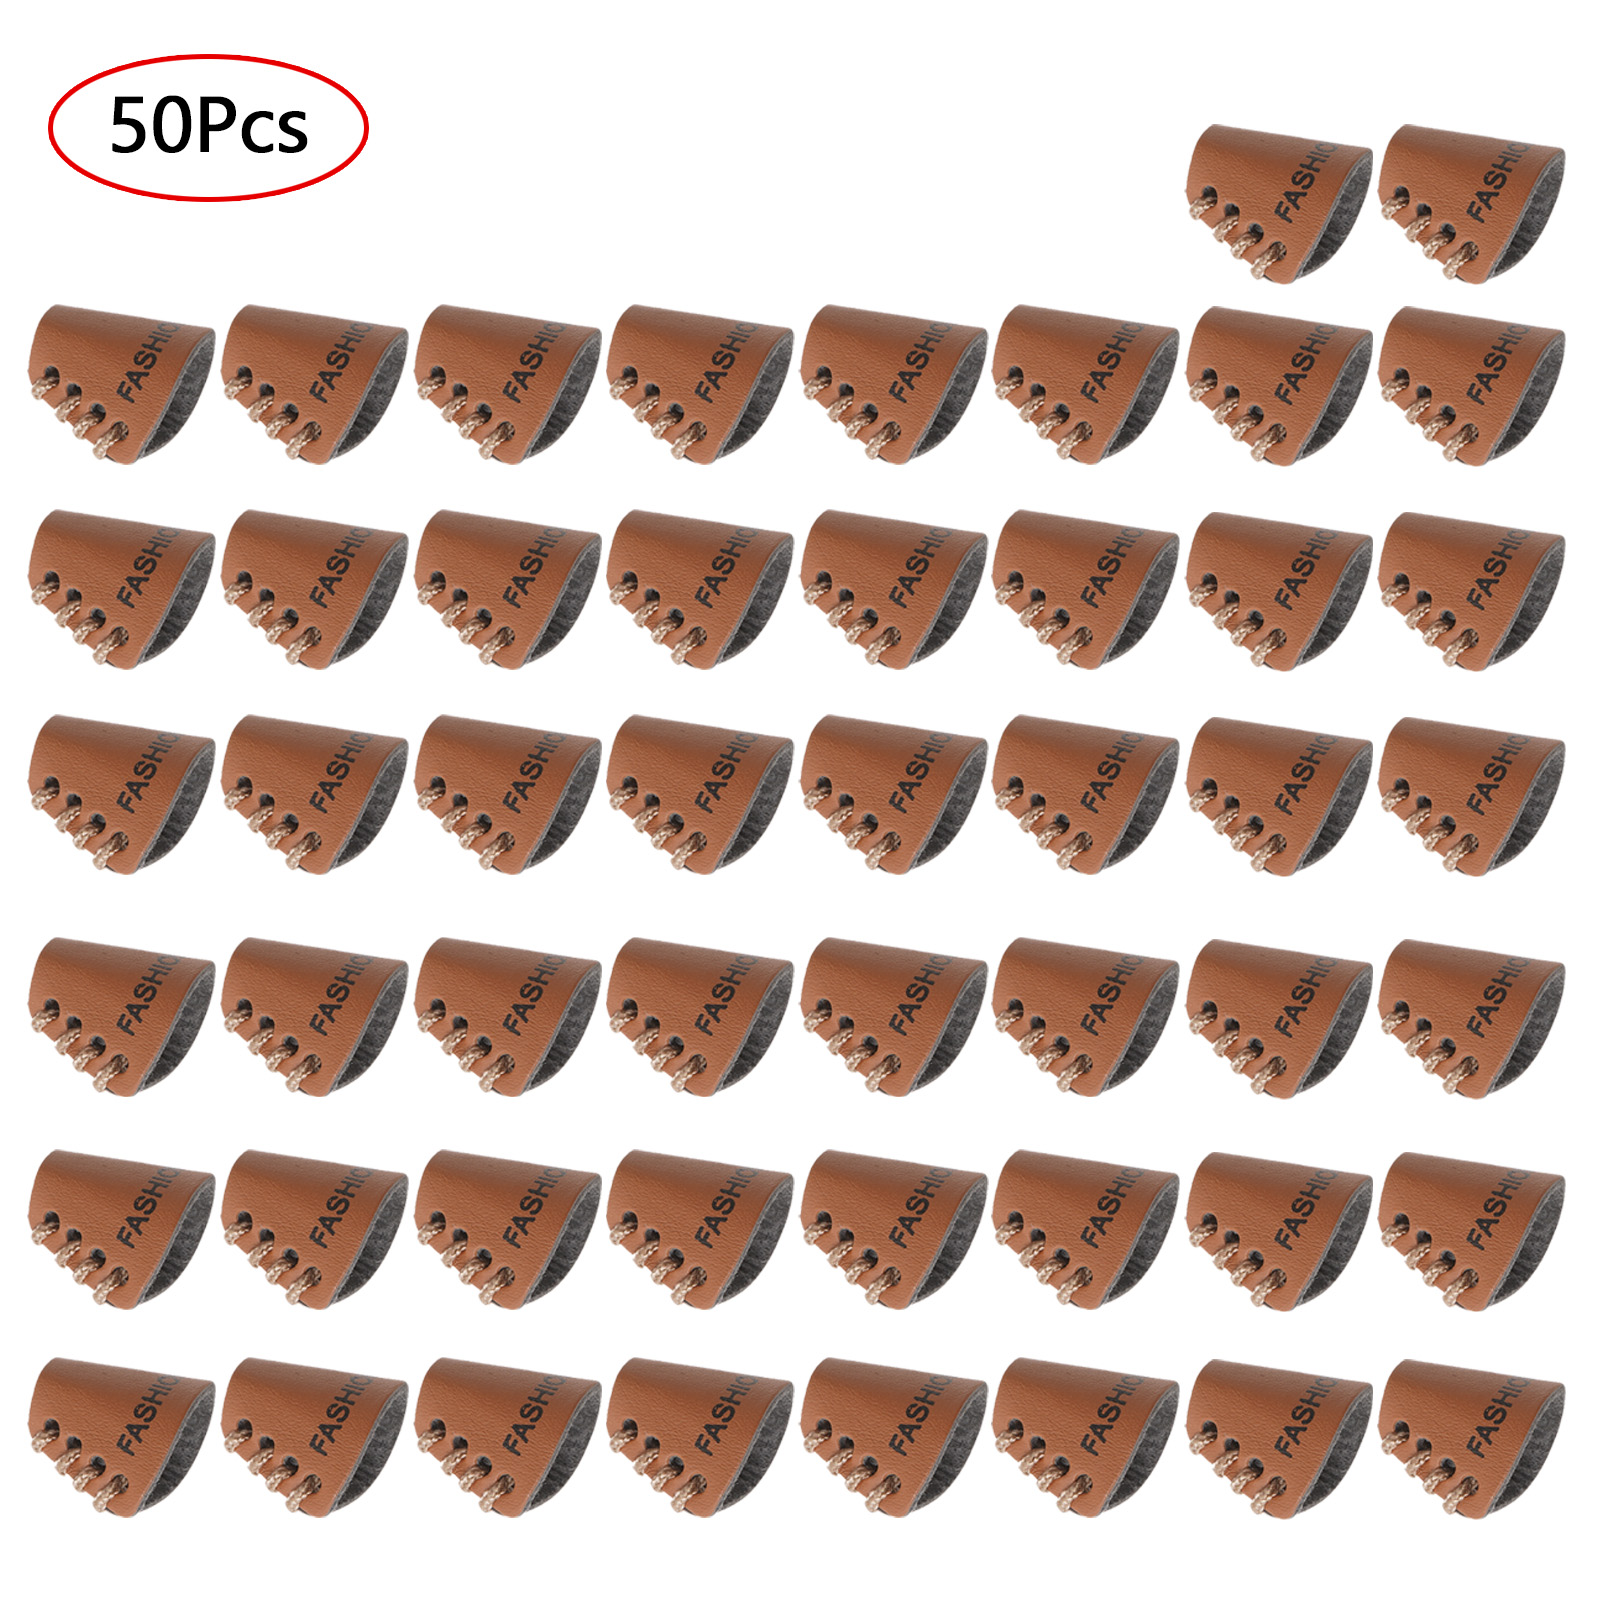 50Pc Brass Metal Hoops Washers Sew On Apparel Cap Badges Leather Clothing Tags Pants Trousers Patches DIY Home Textiles Supplies